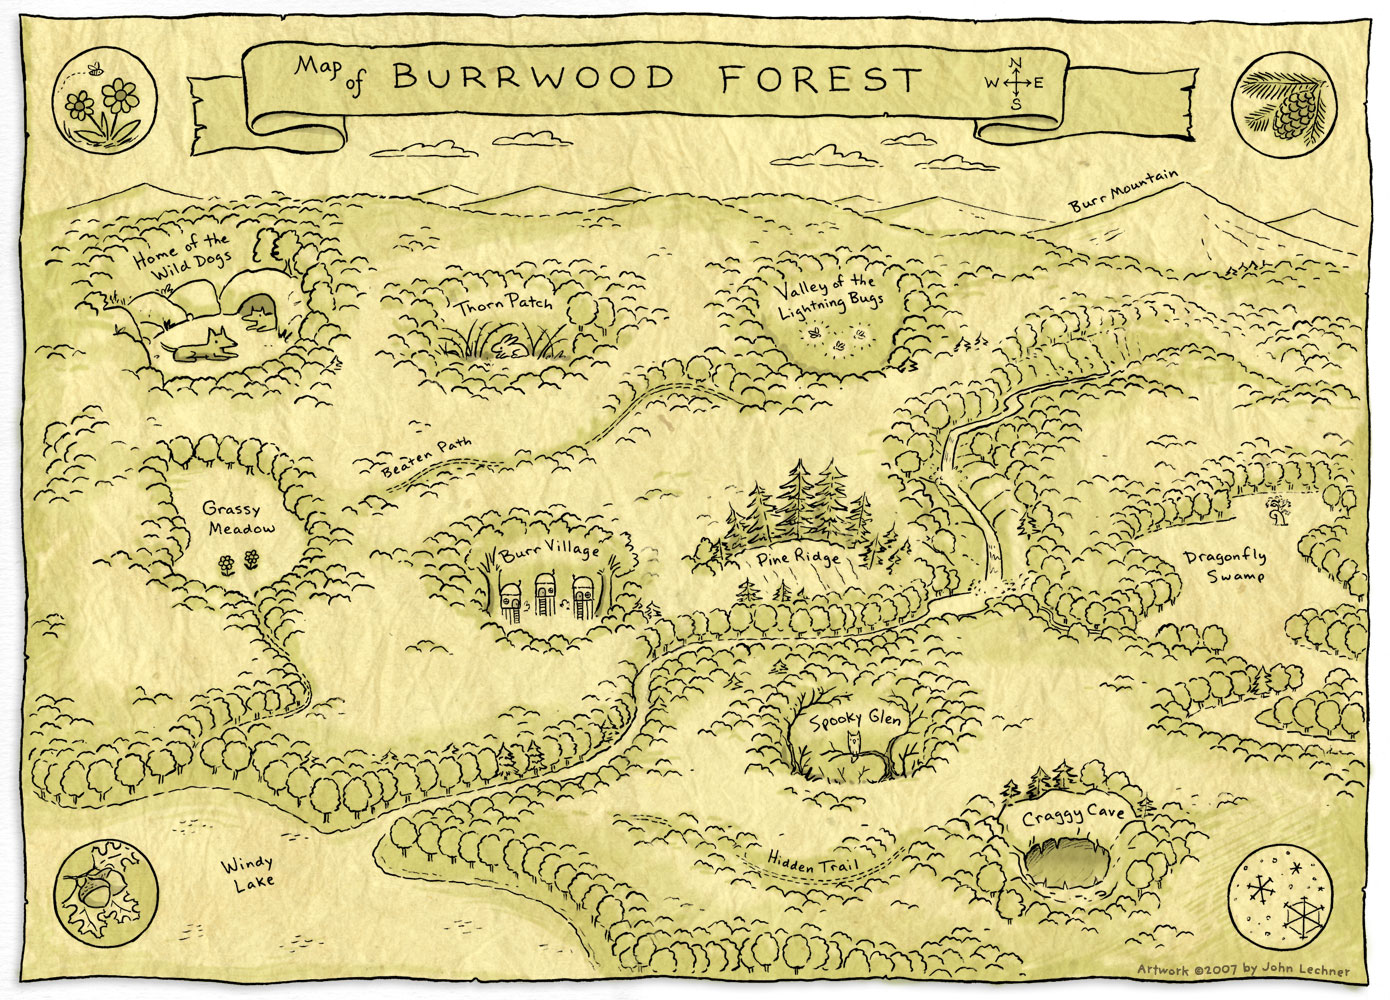 Map of Burrwood Forest